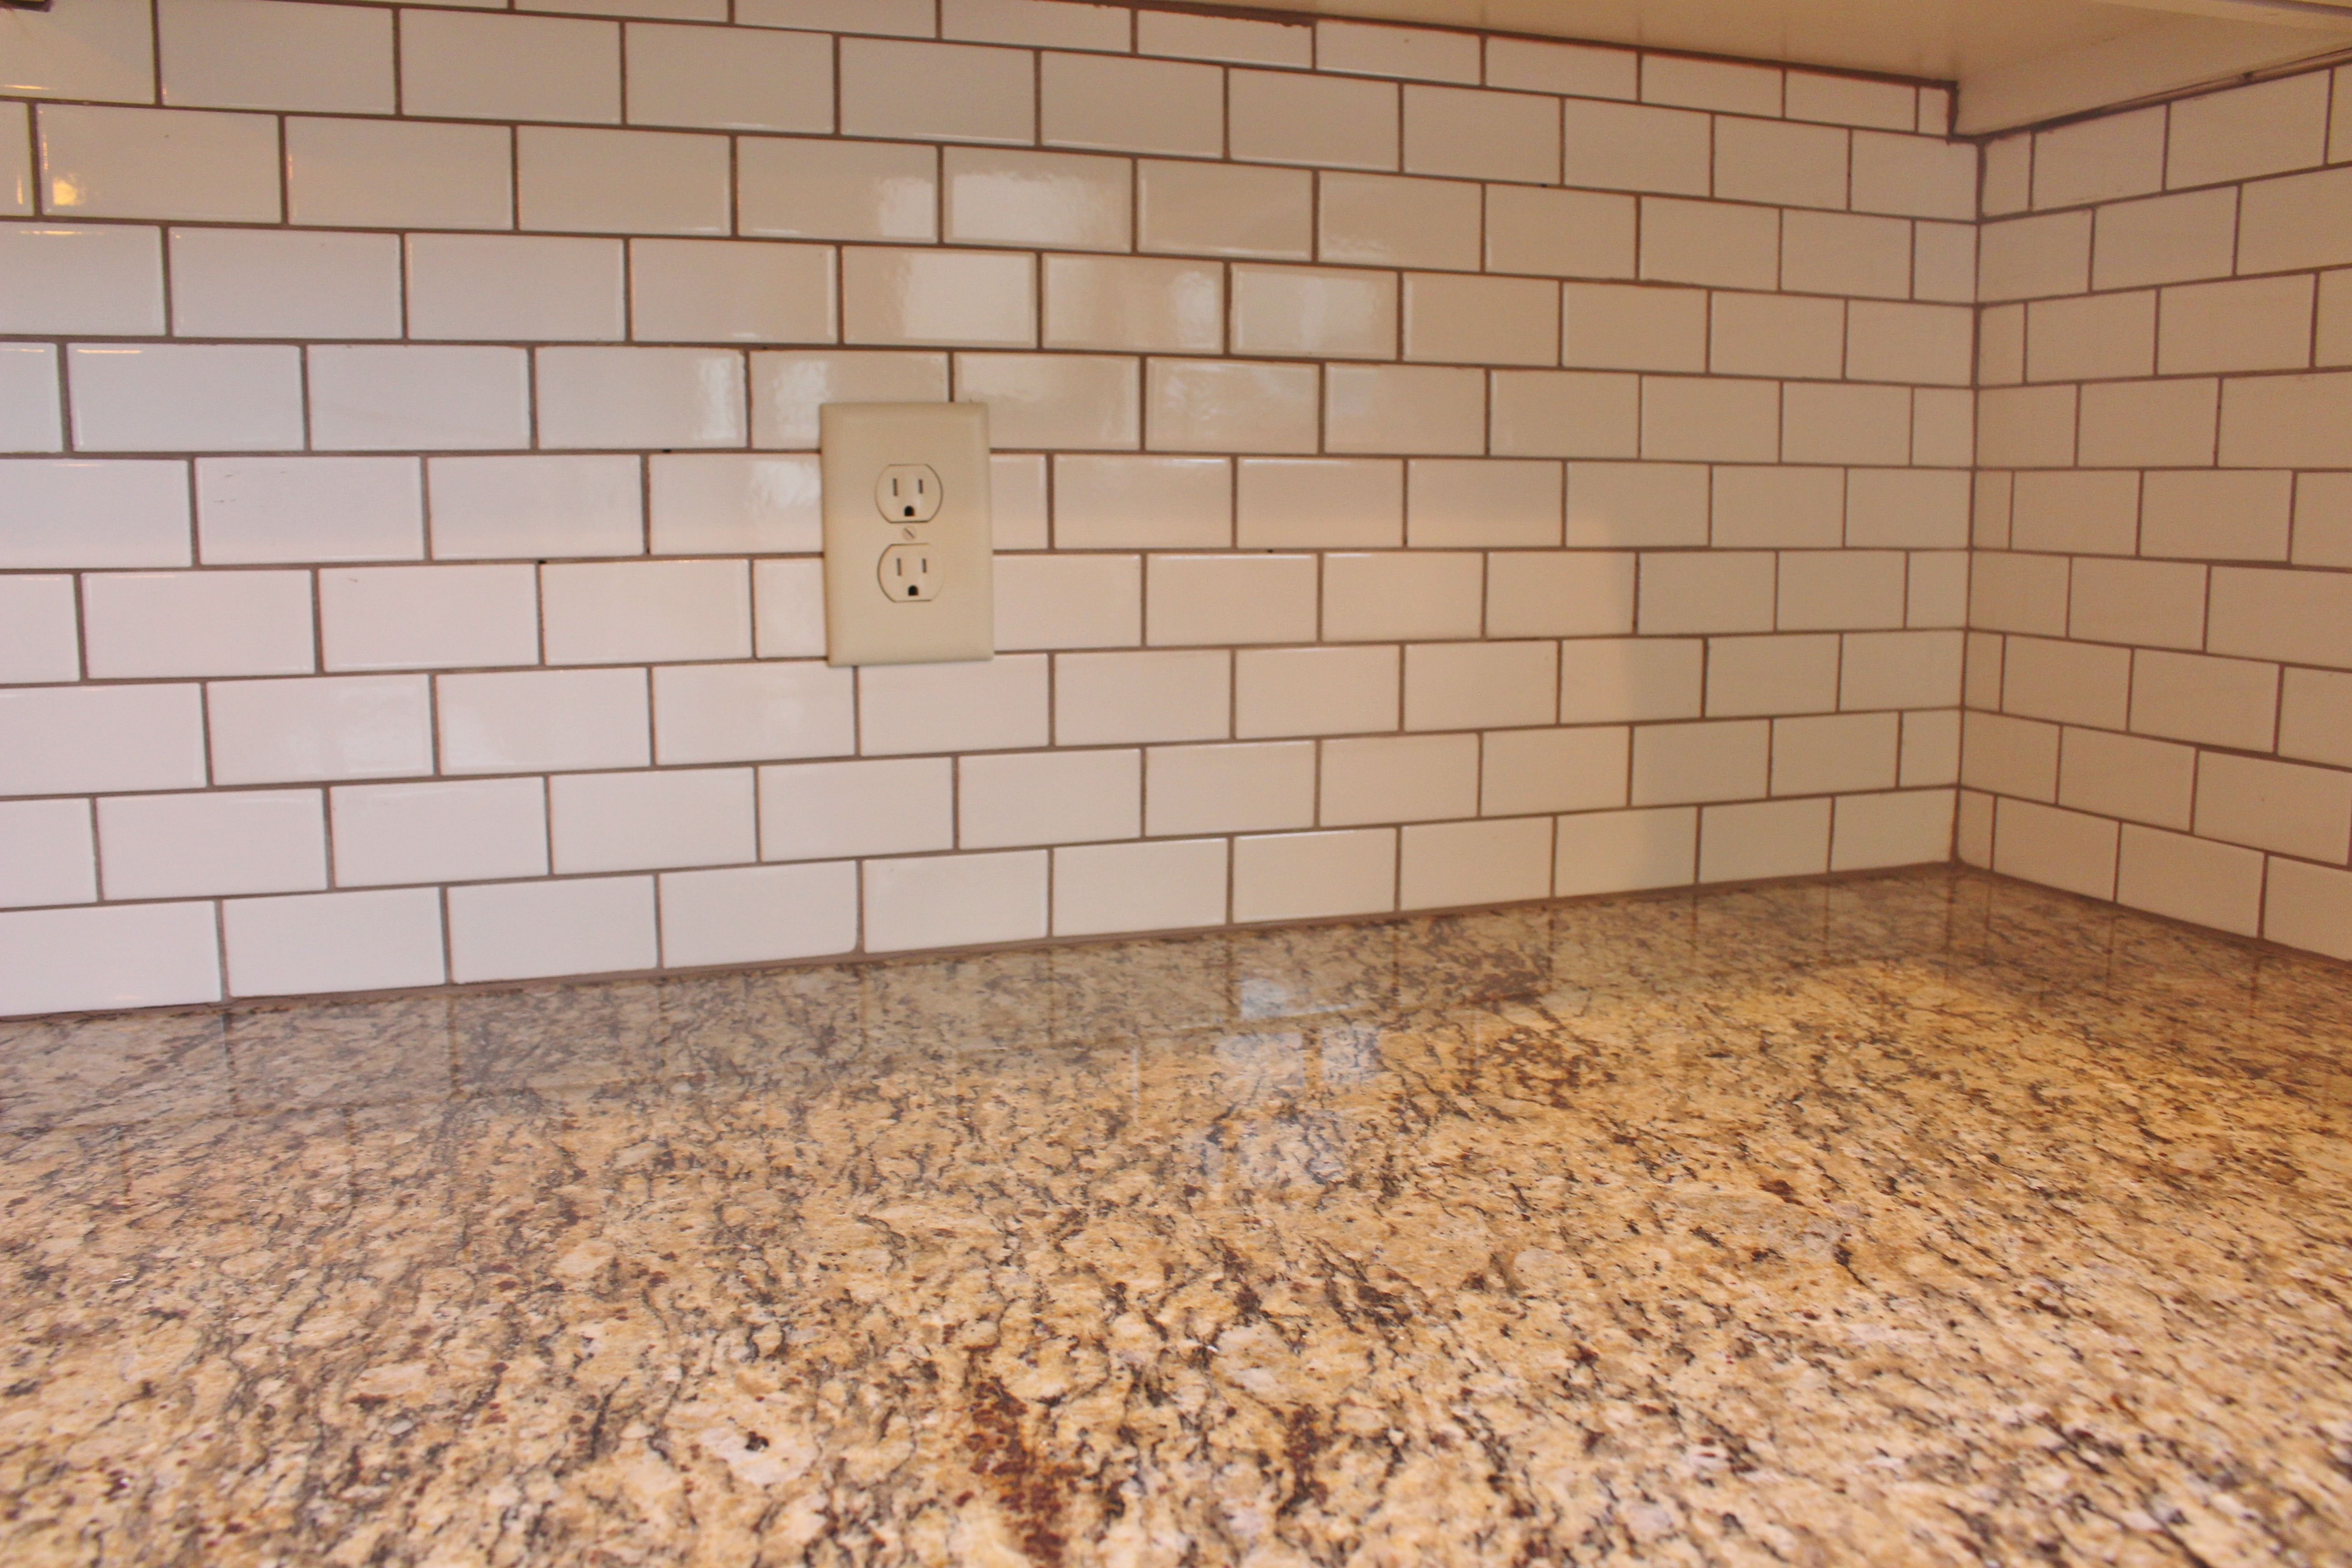 White Subway Tile With Mocha Grout Cheap Kitchen Remodel Kitchen Remodel Small Simple Kitchen Remodel